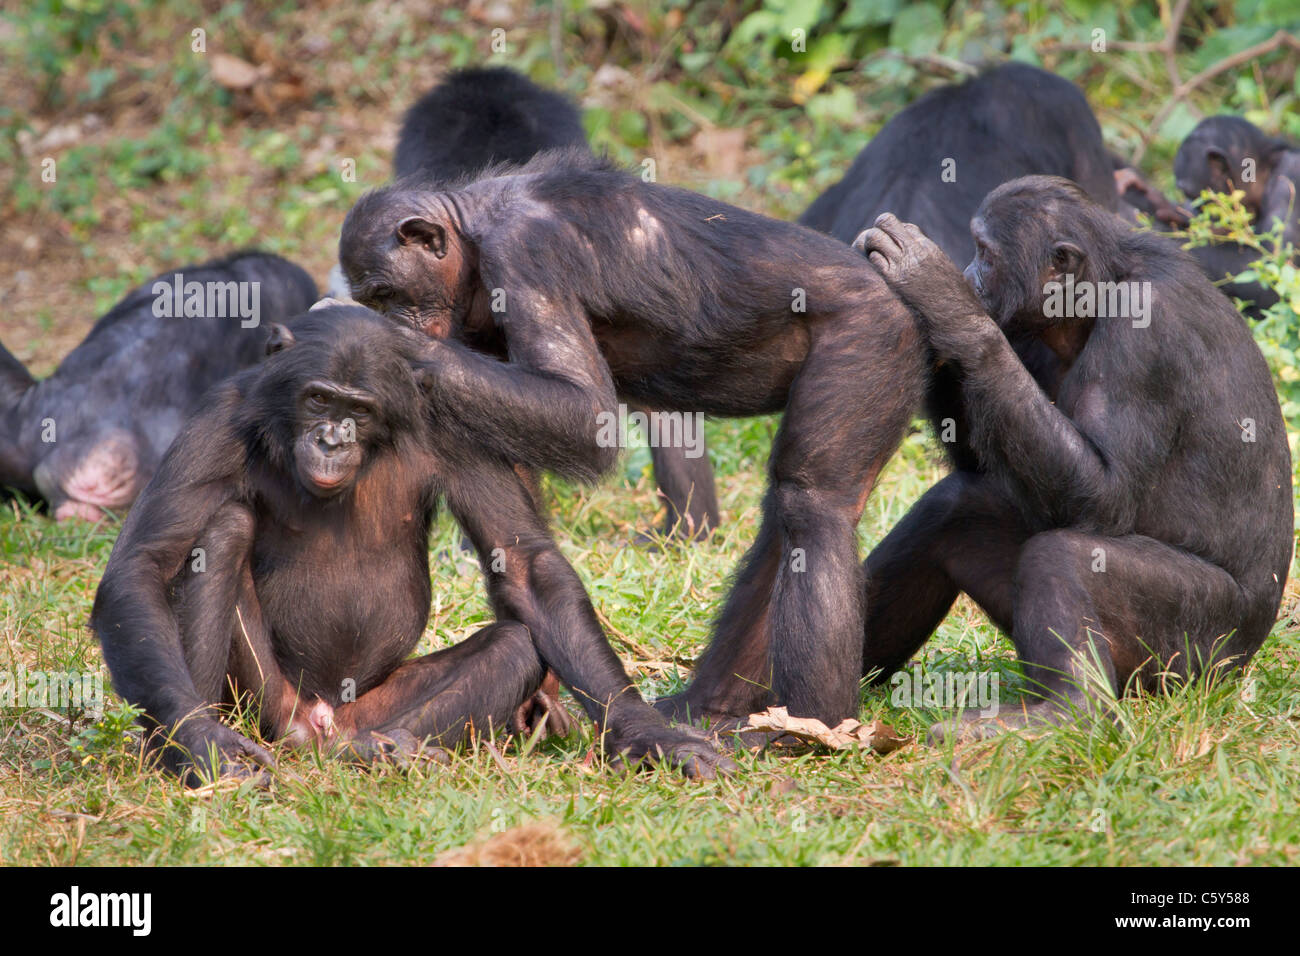 Bonobo (Pan paniscus) doing grooming, D.R. Congo. - Stock Image